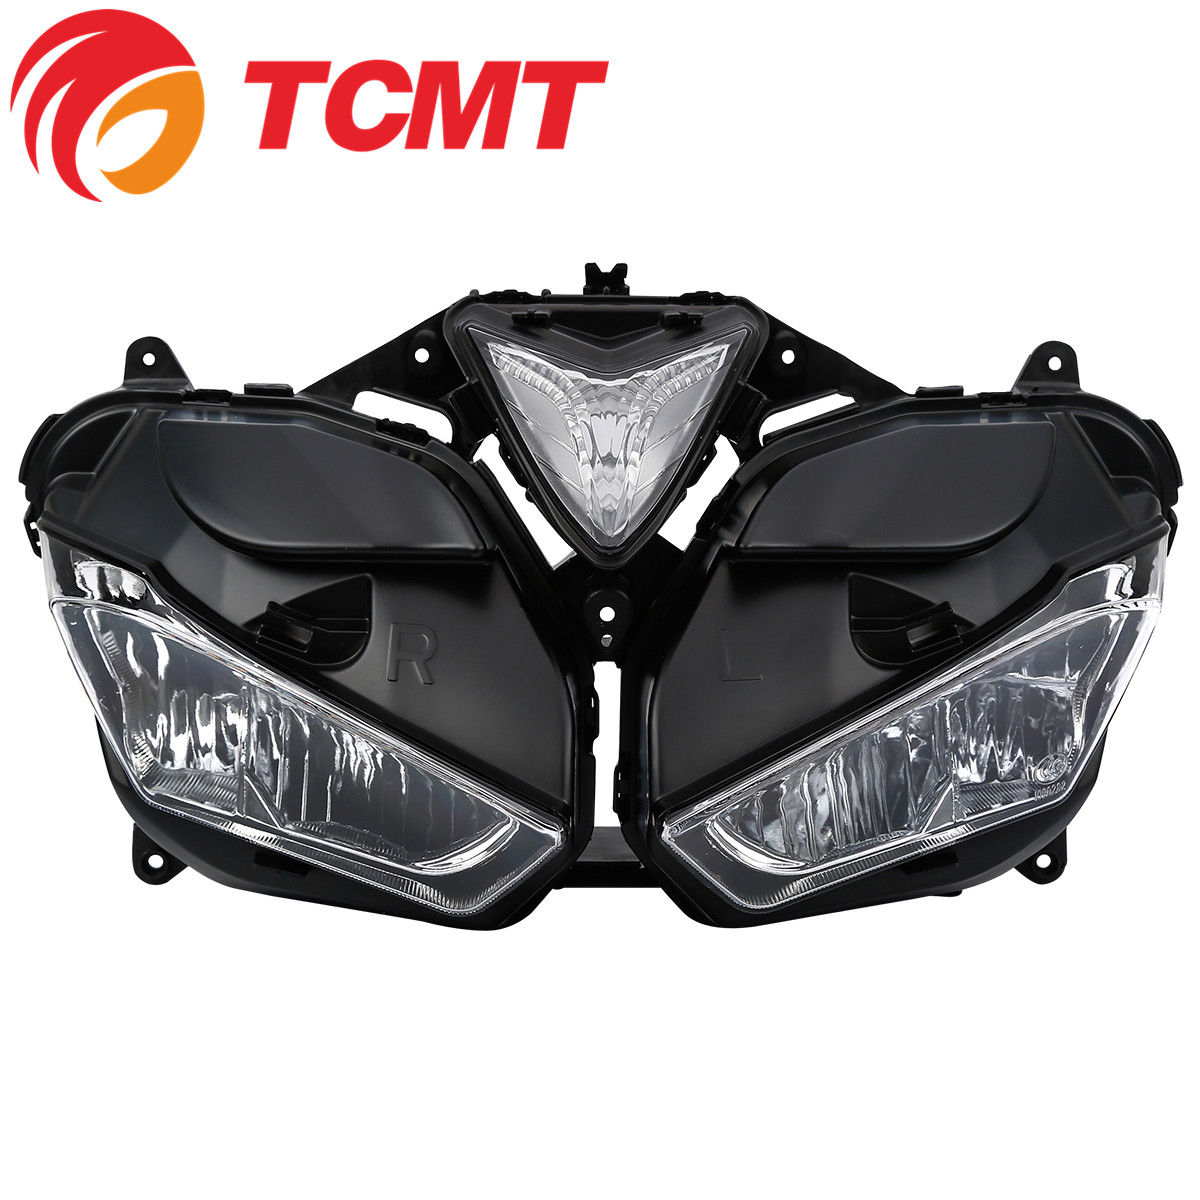 Tcmt Xf140187 Motorcycle Parts Front Headlight Assembly Head Lamp Clear Lens For Yamaha Yzf R3 R25 2013 2016 Buy Motorcycle Parts